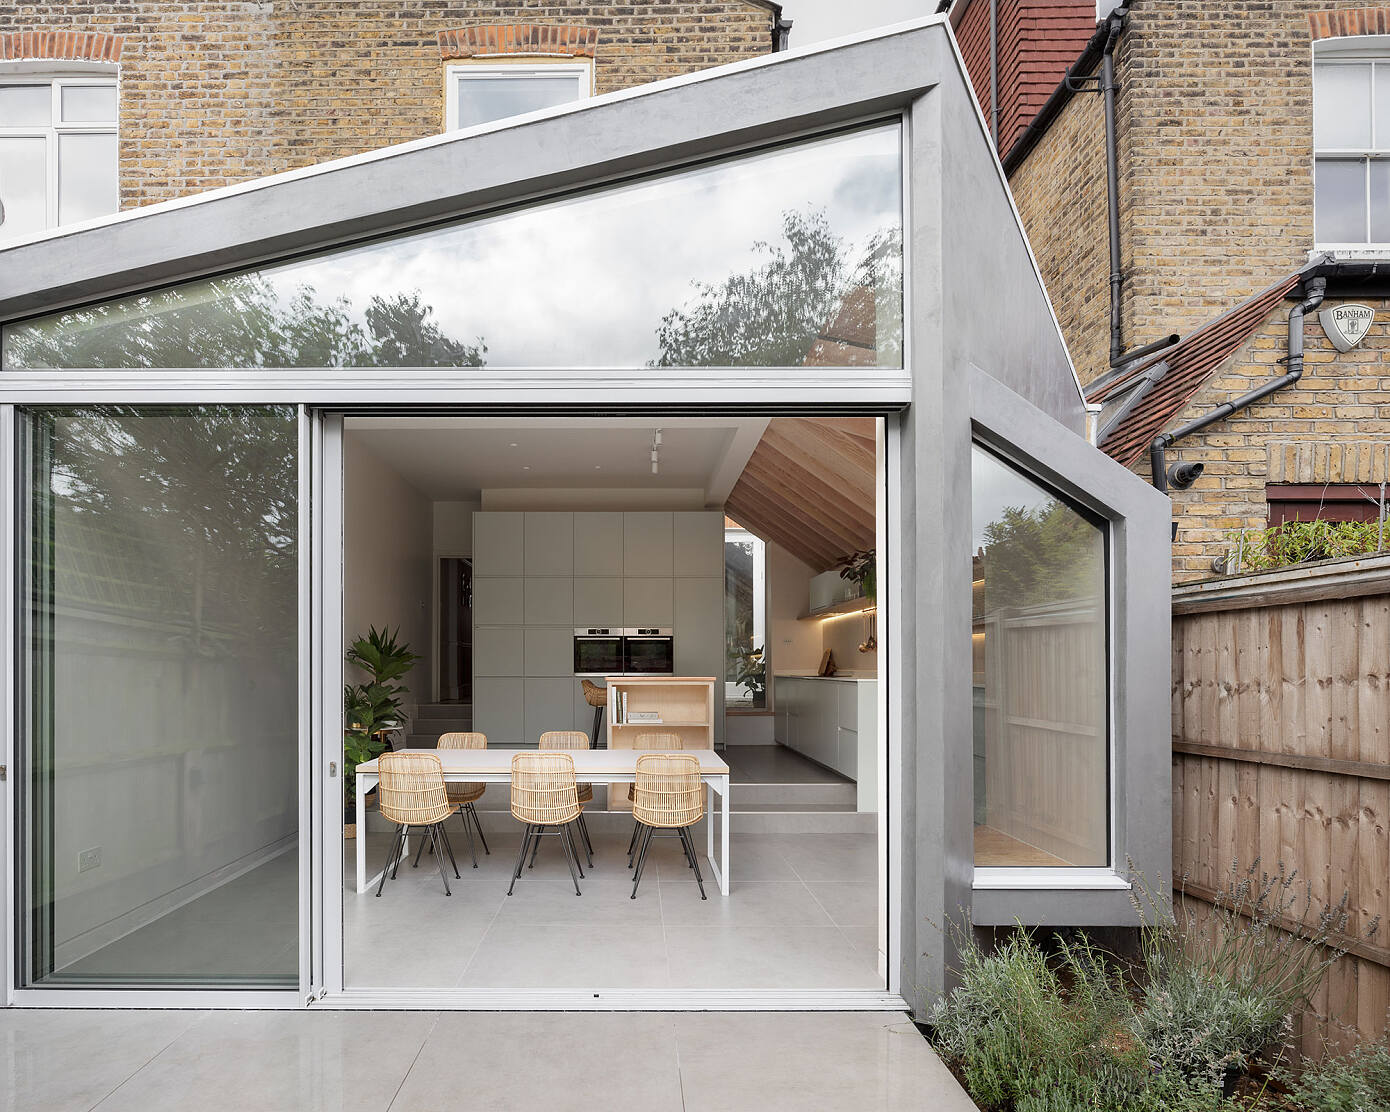 Quarter Glass House by Proctor & Shaw